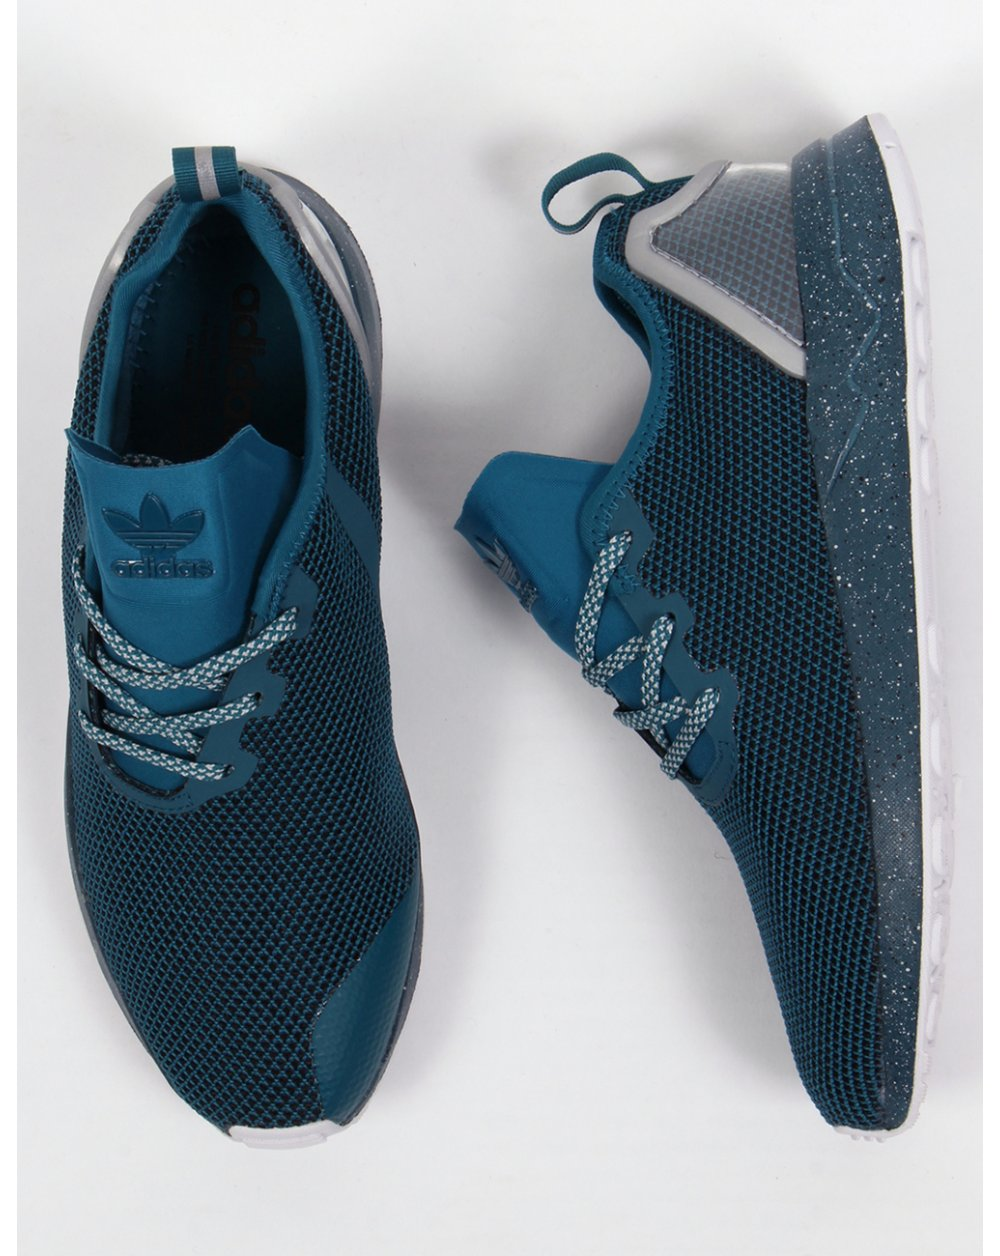 ed1baeca2 new zealand adidas zx flux racer blue db904 26d0c